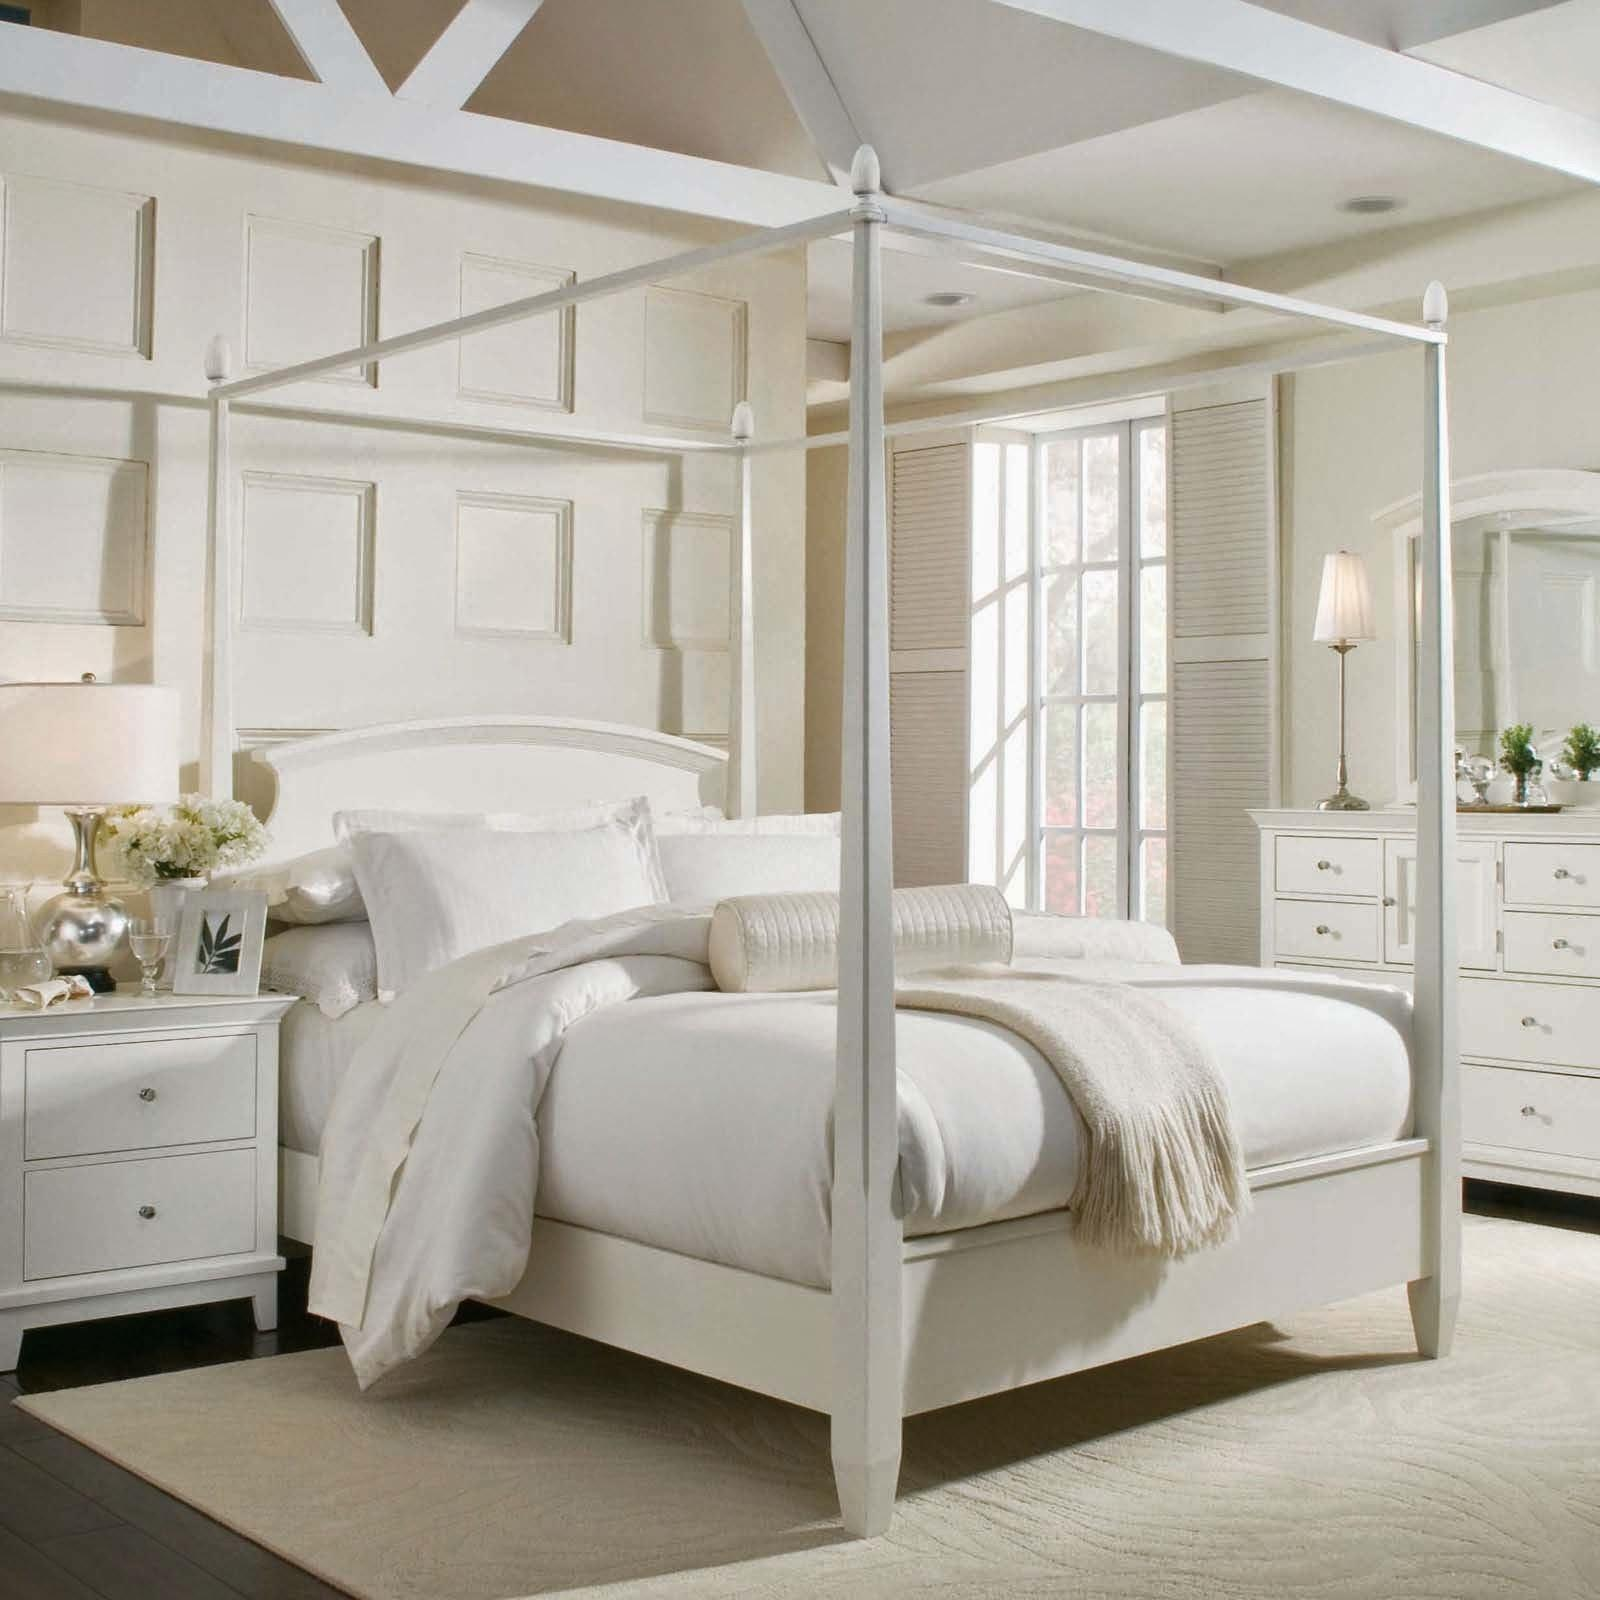 Canopy Bed Ideas Bedroom